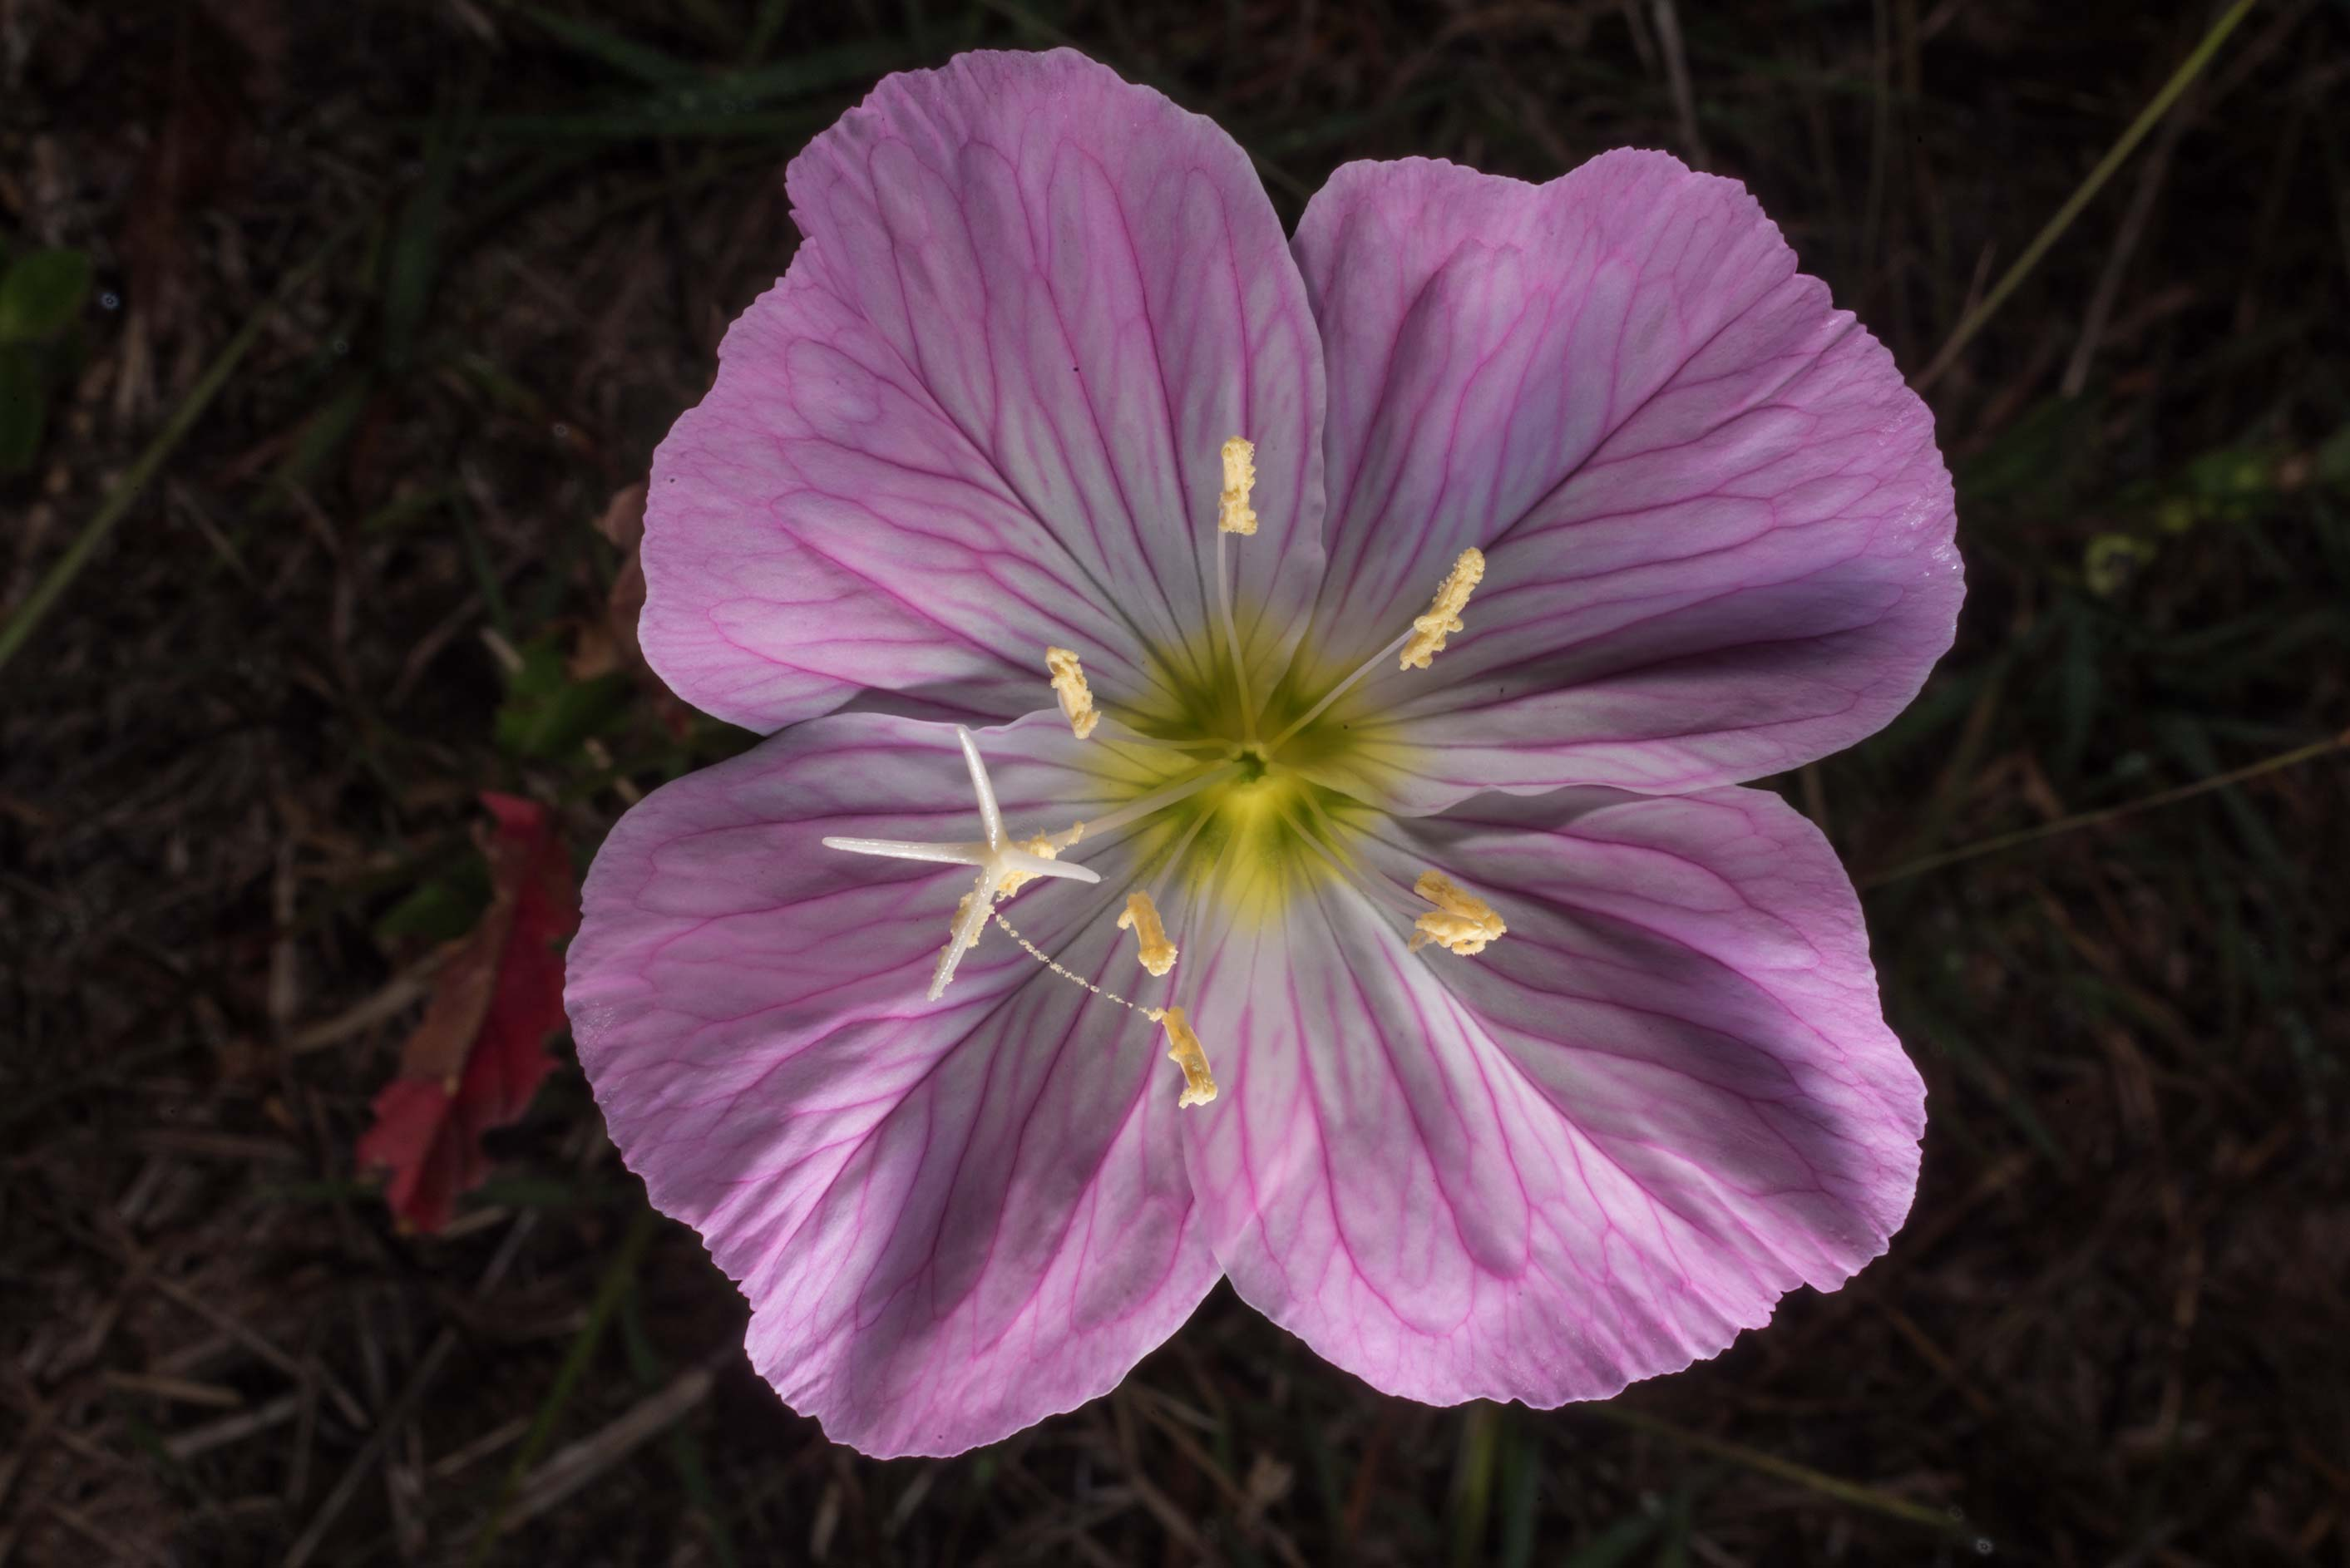 Flower of showy evening primrose (Oenothera...State Historic Site. Washington, Texas